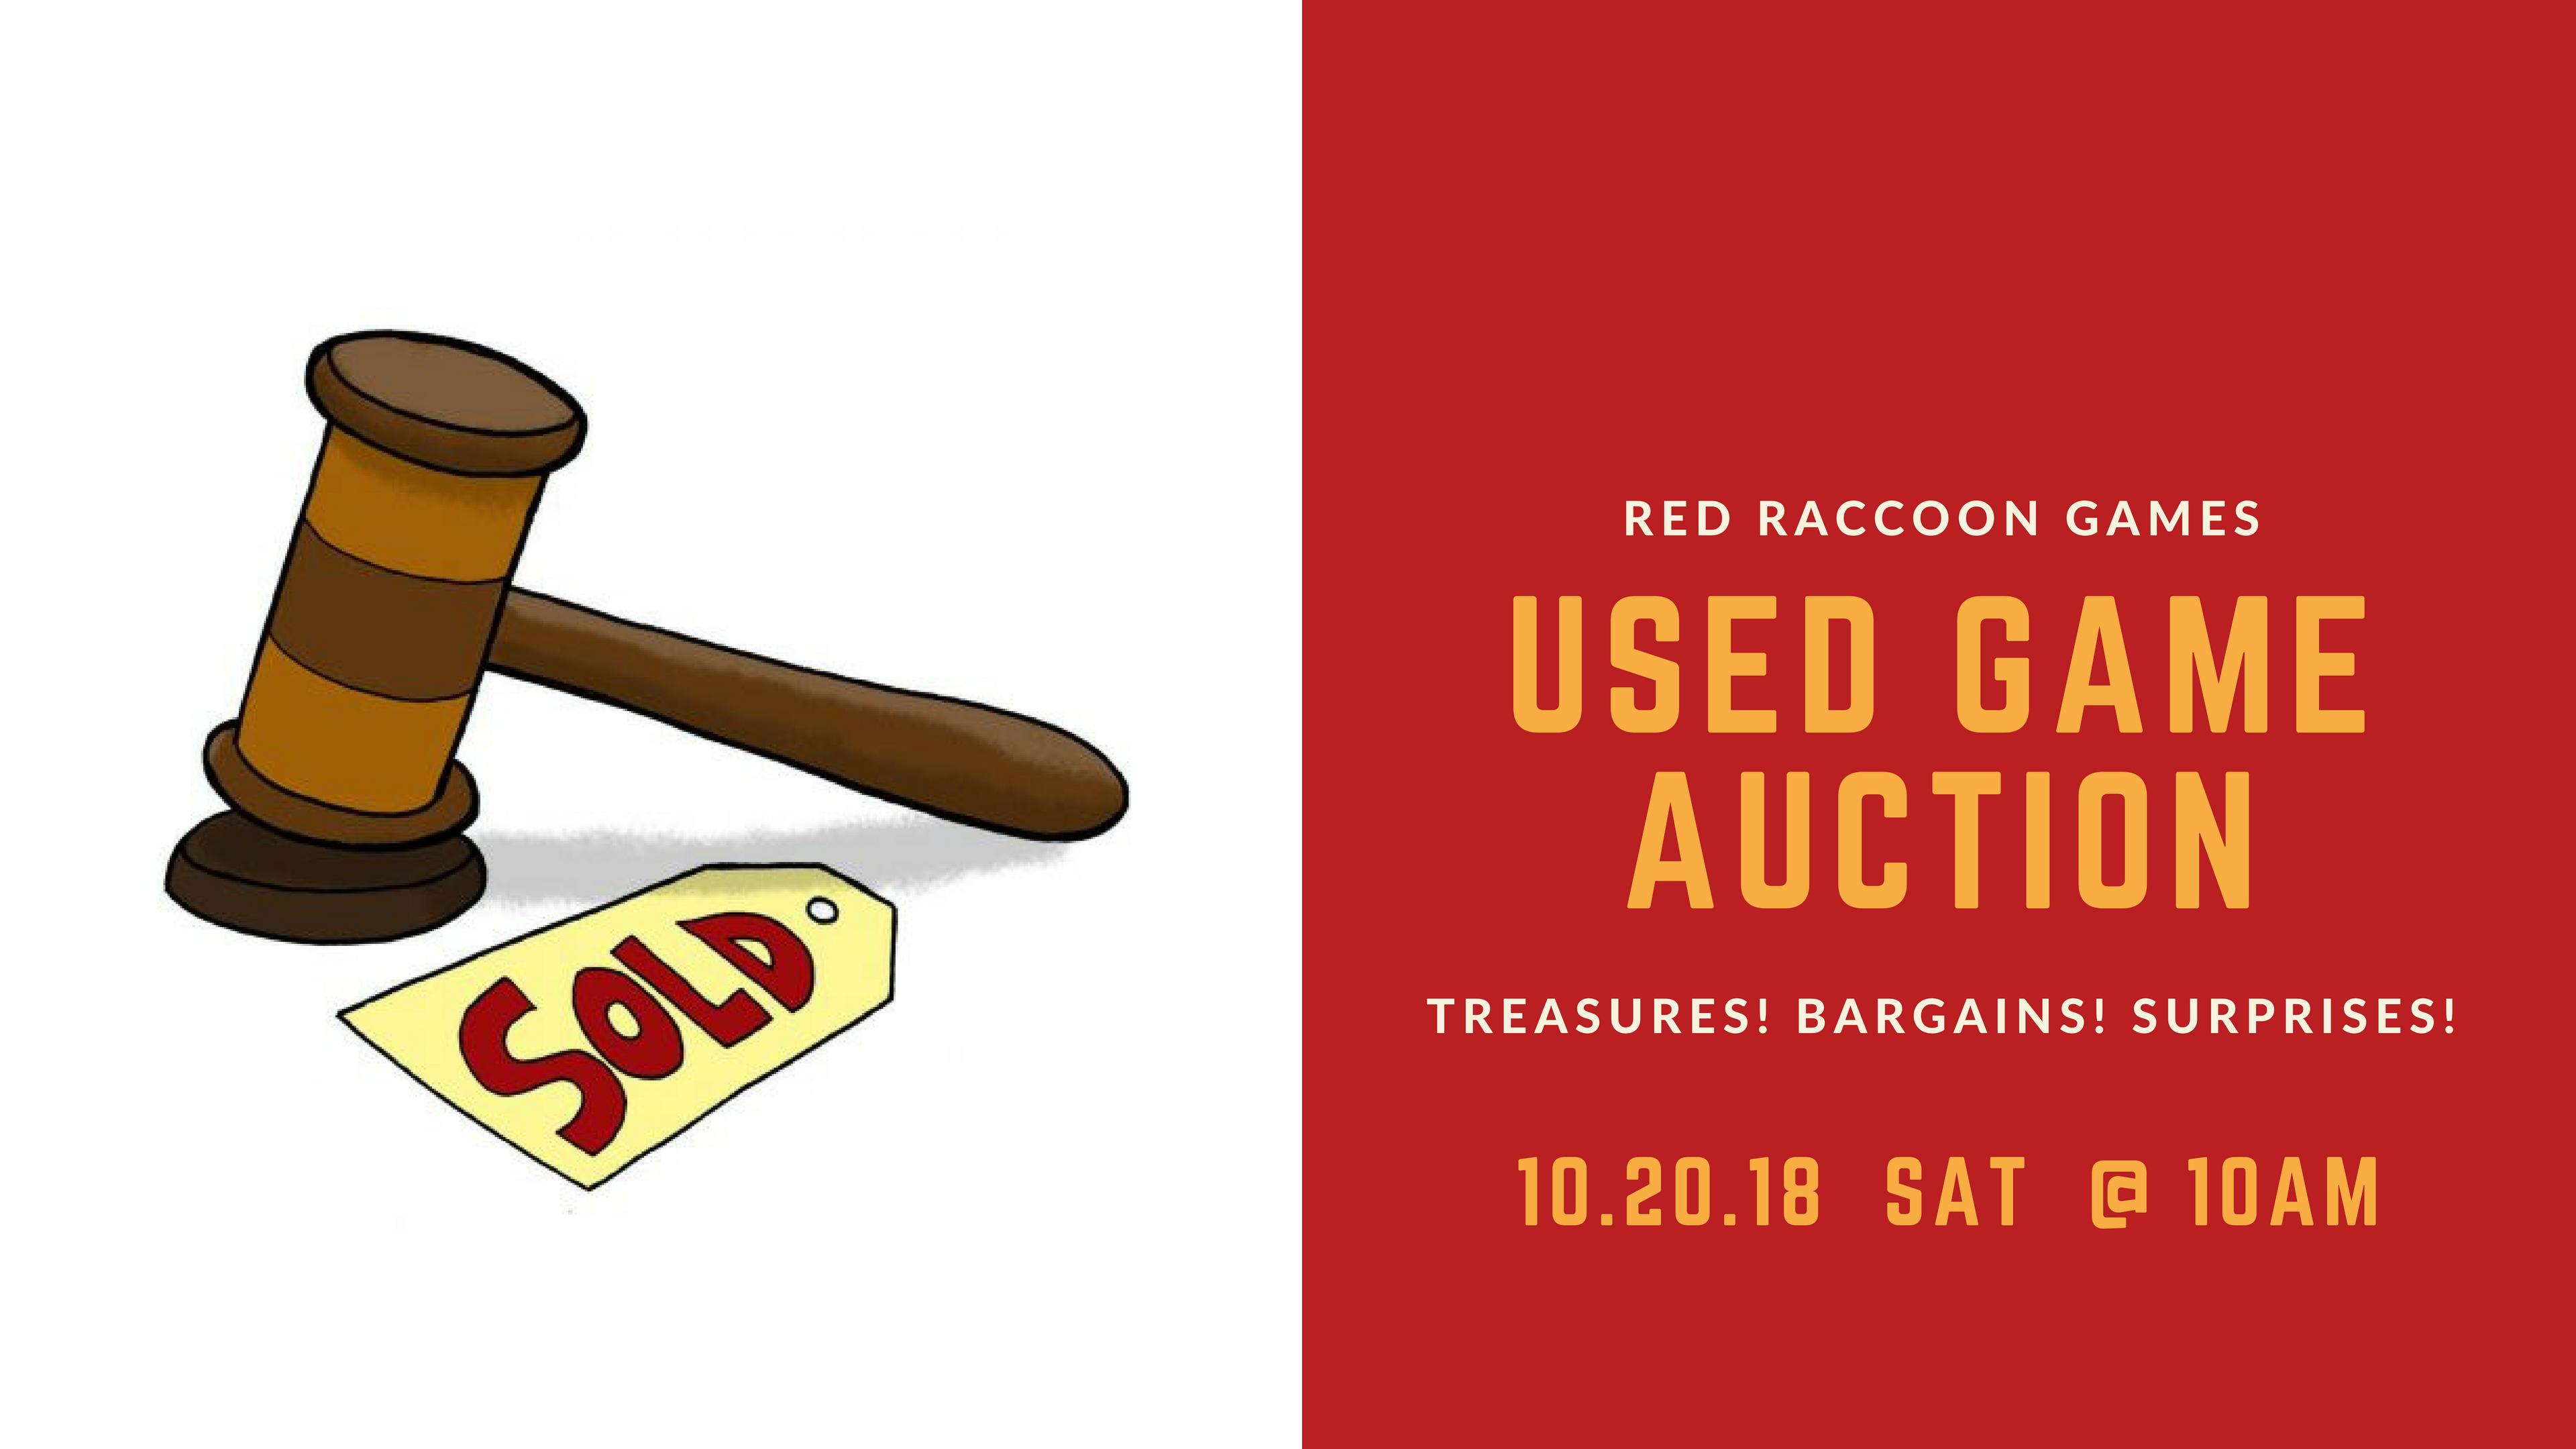 584d18ecf497d Want to sell your gently used games at the 2018 Red Raccoon Games Used Game  Auction?